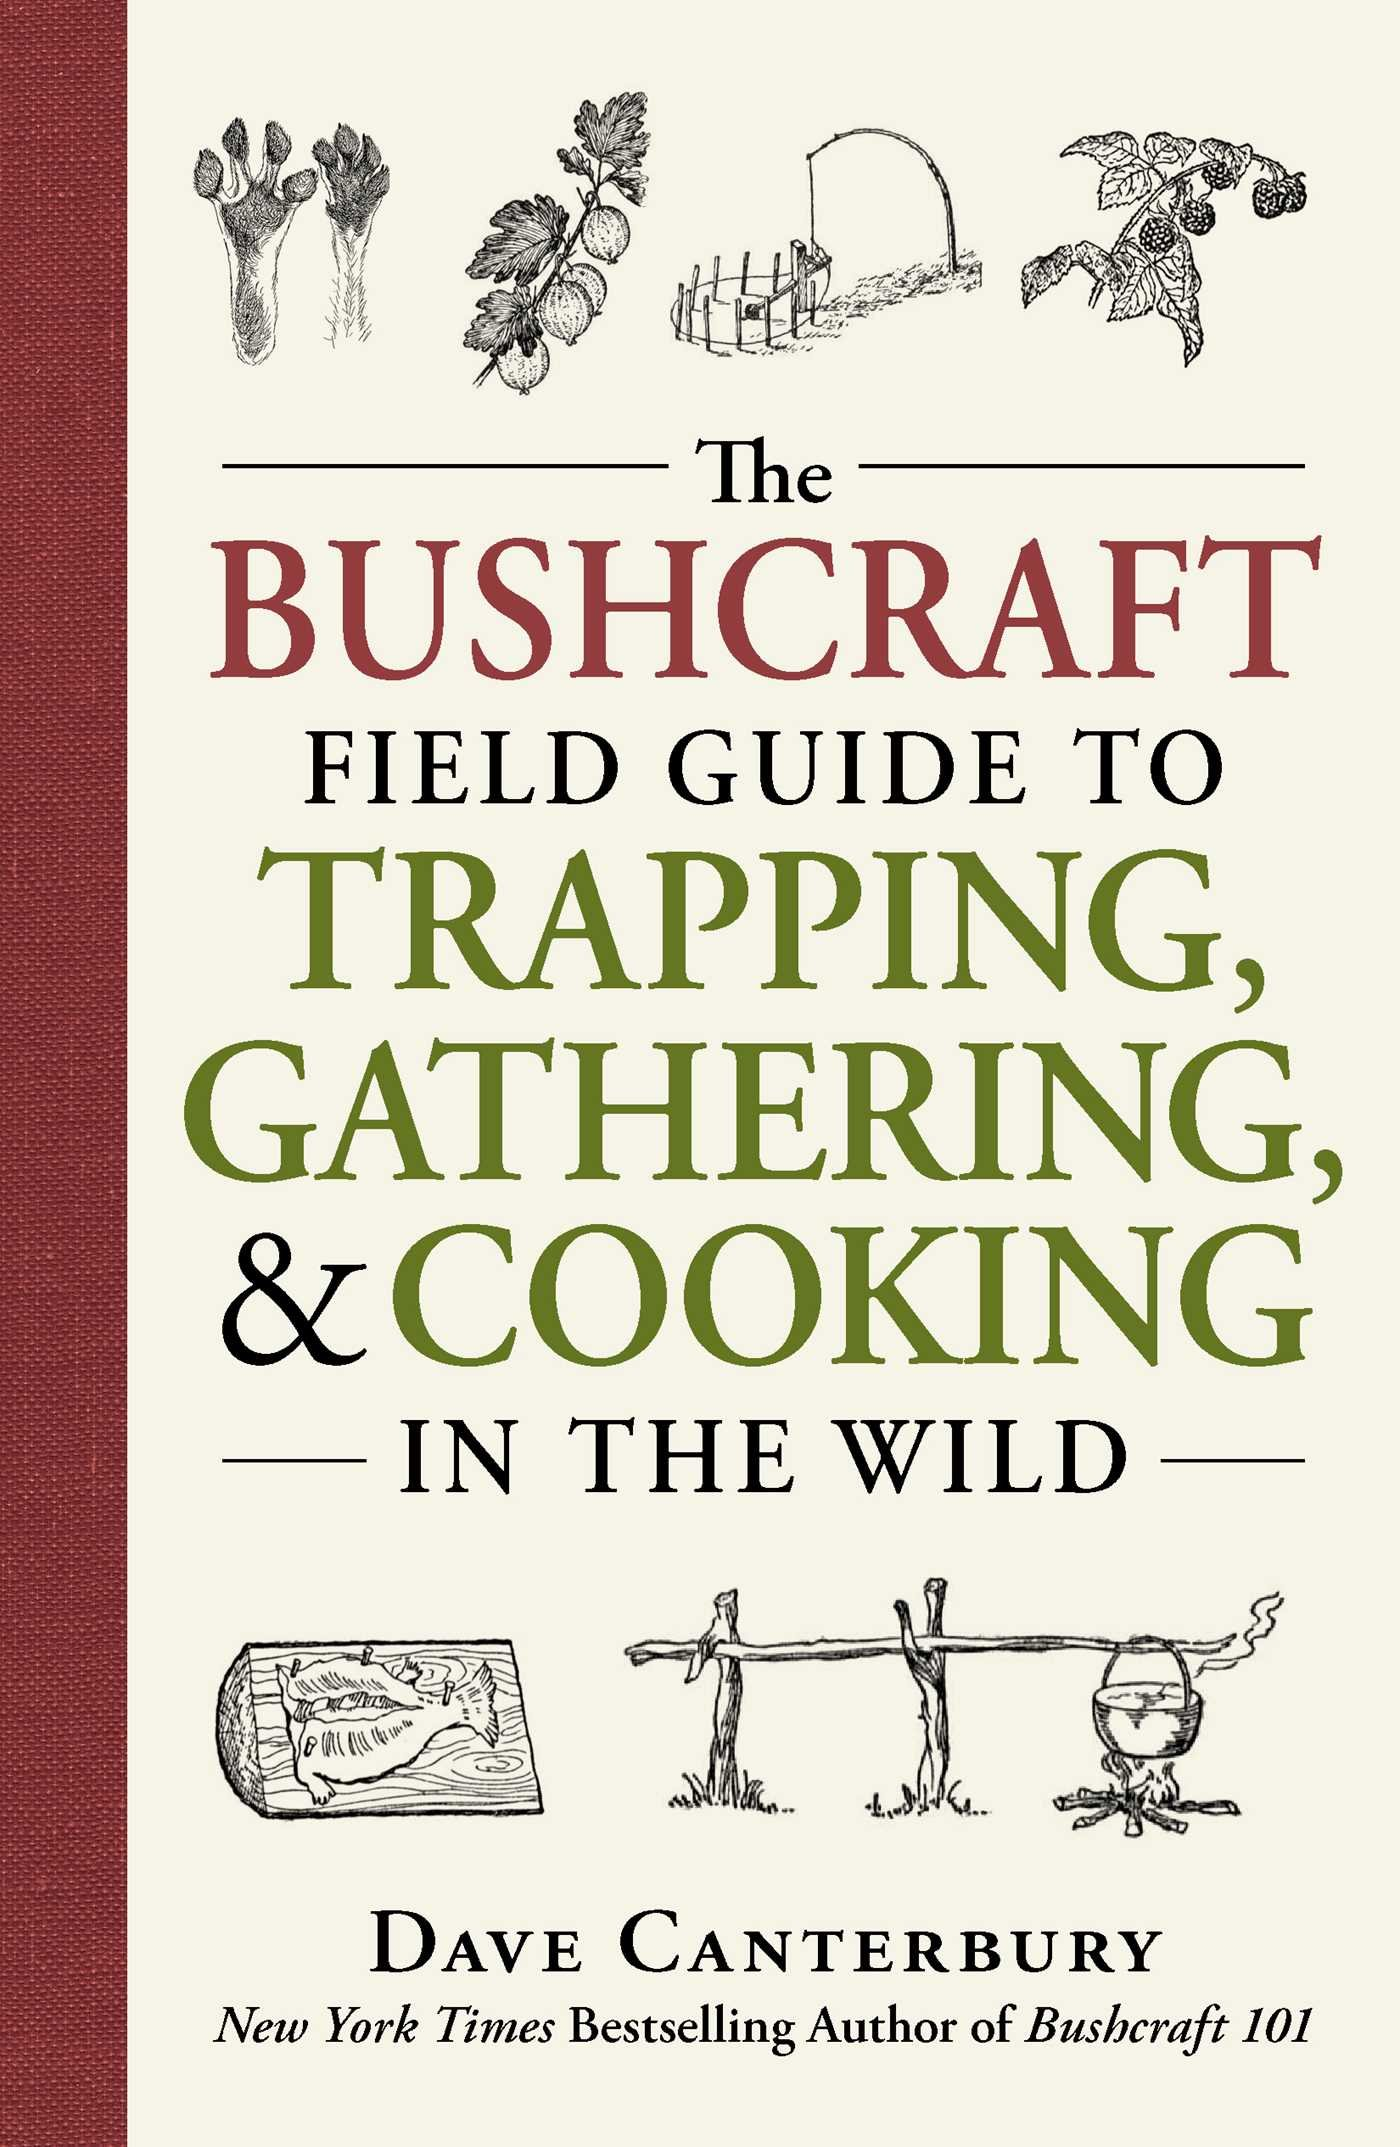 Bushcraft Field Trapping Gathering Cooking product image